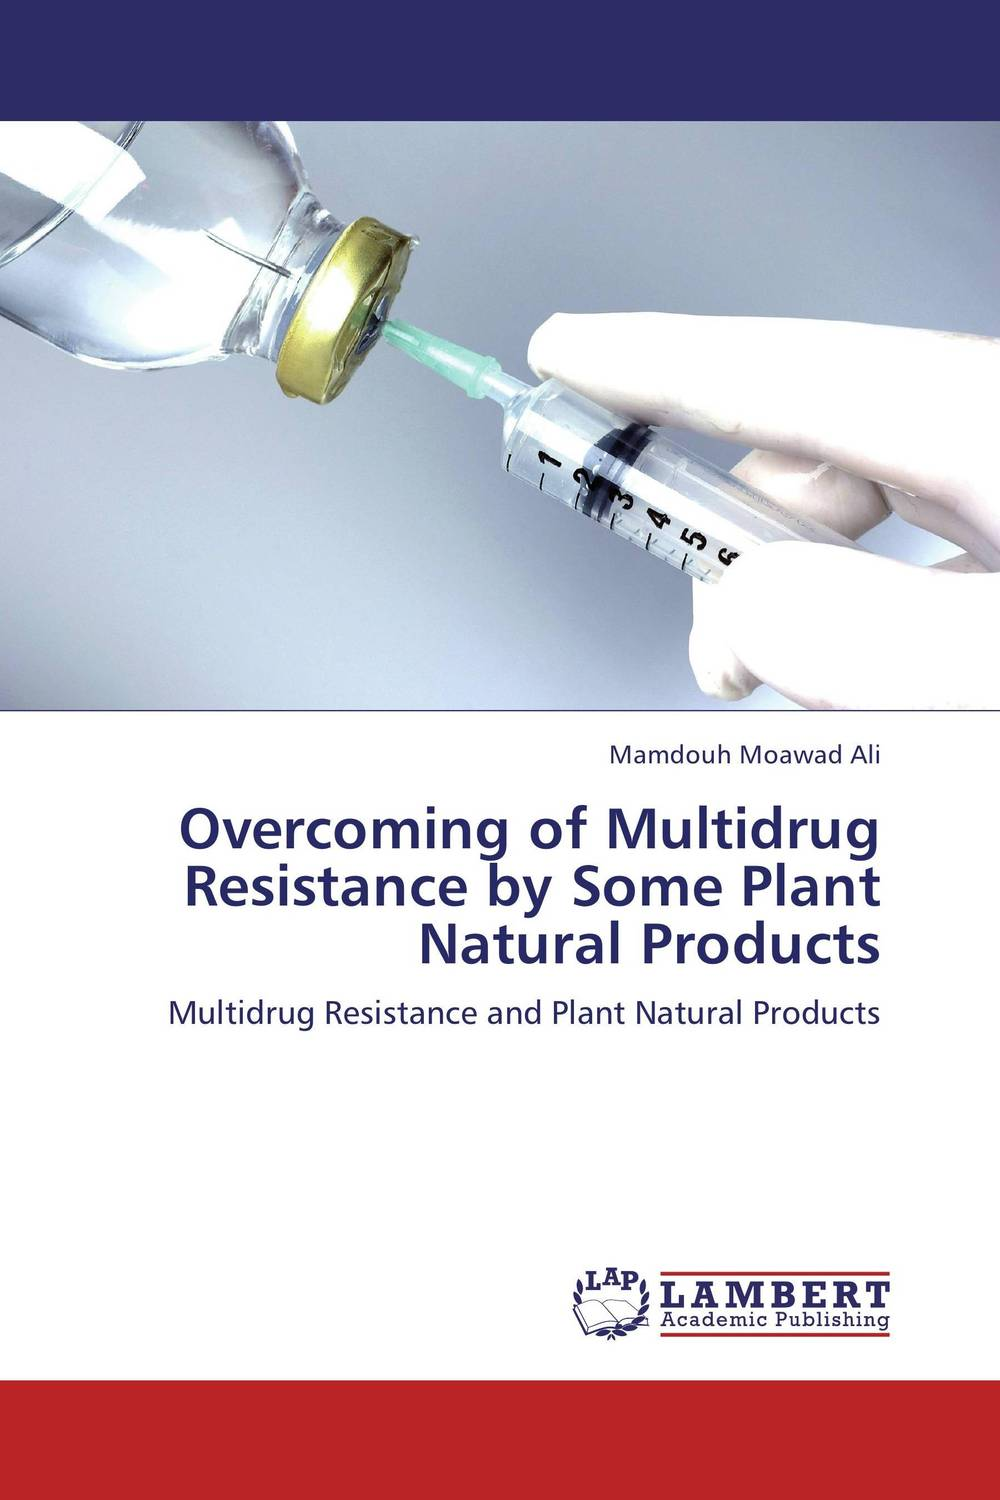 Overcoming of Multidrug Resistance by Some Plant Natural Products saif hameed regulation of multidrug resistance in human pathogen candida albicans